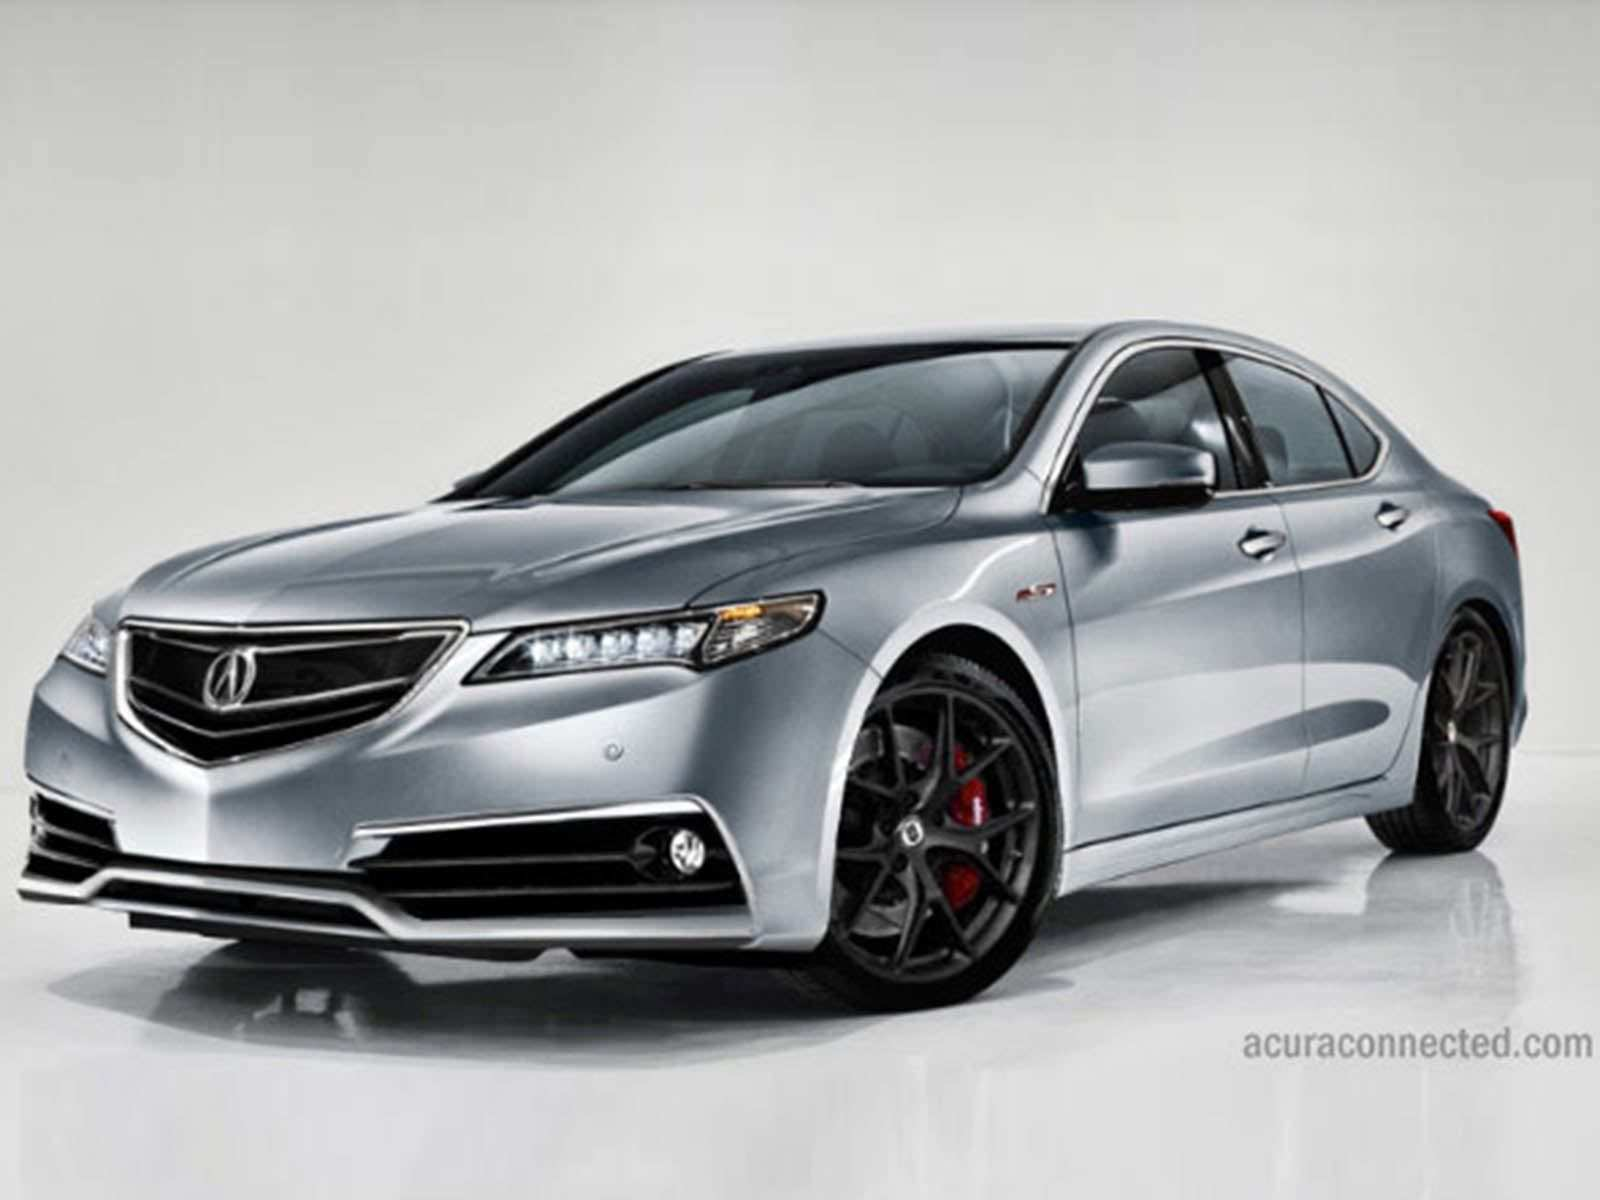 52 New 2020 Acura Tl Type S Exterior for 2020 Acura Tl Type S